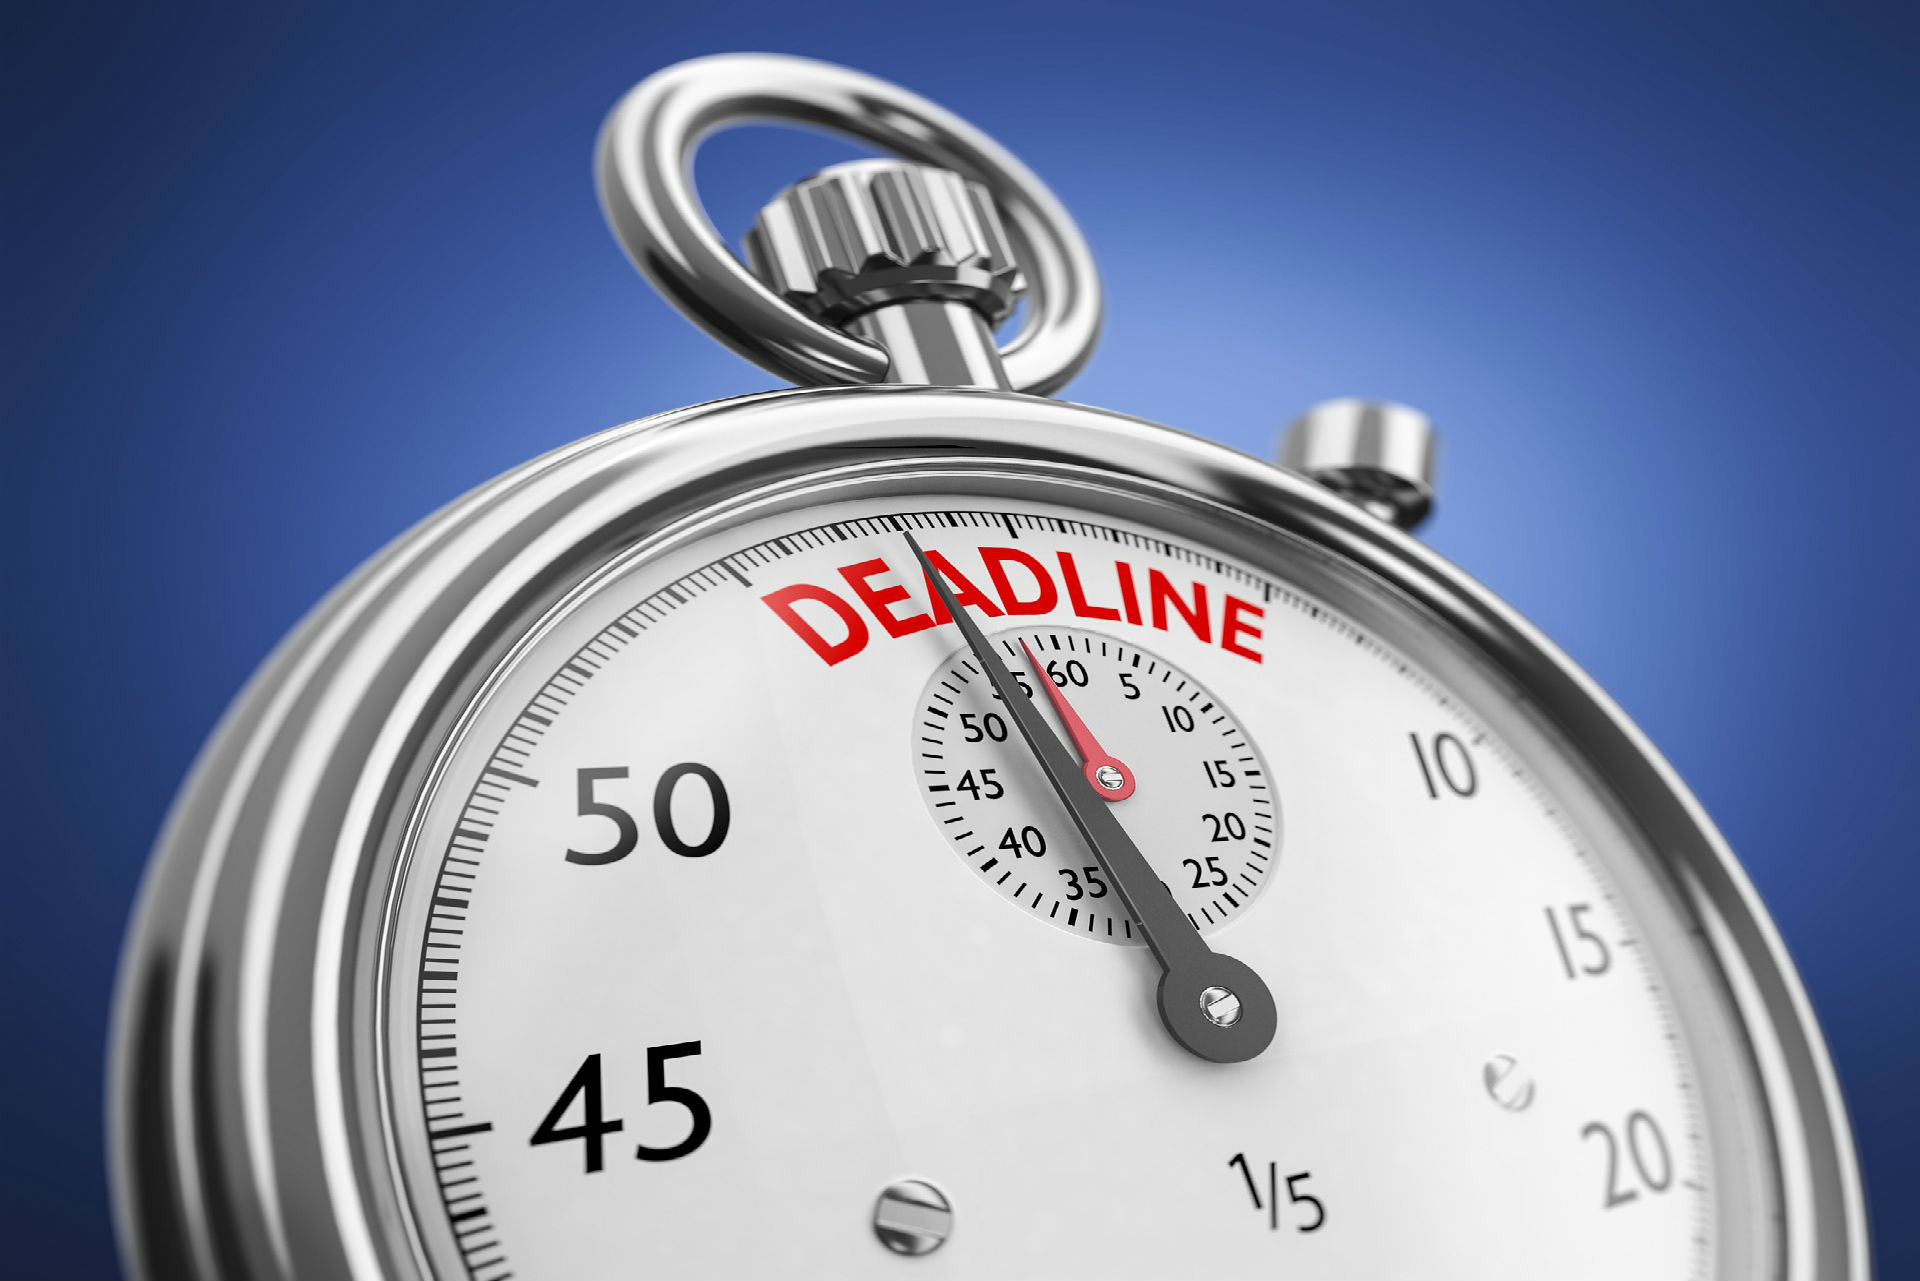 SQL Server Processor to Core Conversion Grant Deadline